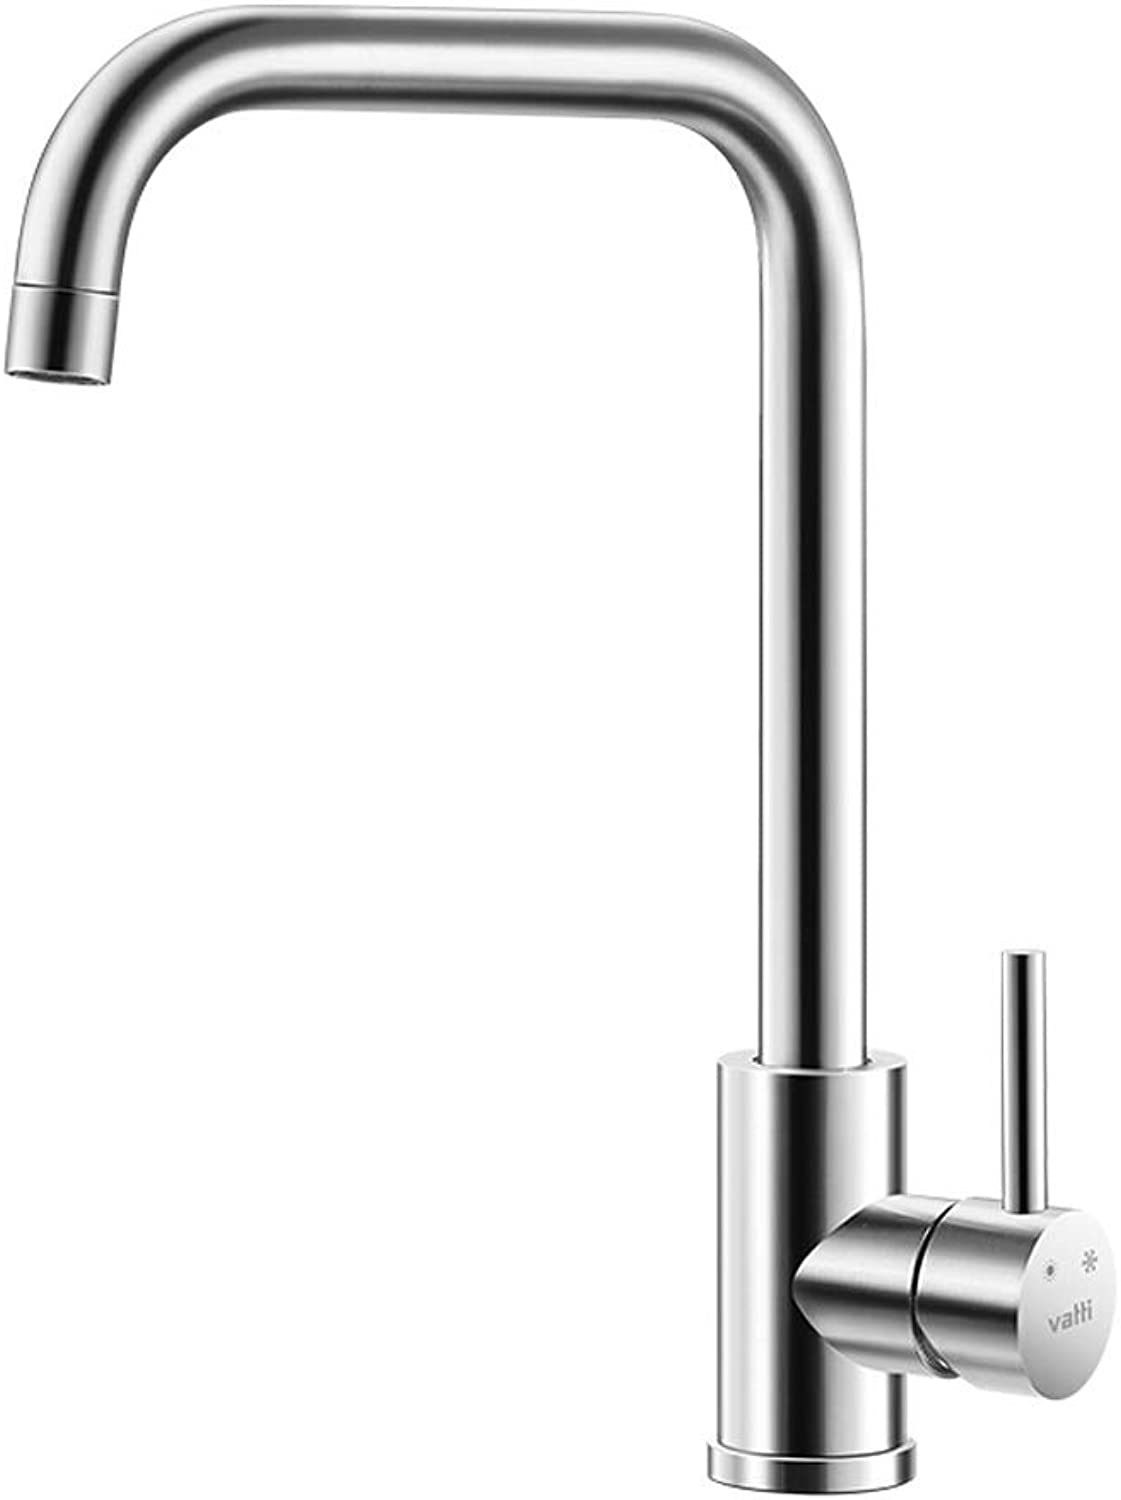 WOOMD Lead-free 304 Stainless Steel Kitchen Faucet Healthy Kitchen Sink Hot and Cold Faucet 360° Free redating Sink Faucet Bar Faucet Copper Main Body Kitchen Faucet Basin Faucet Bathroom Faucet